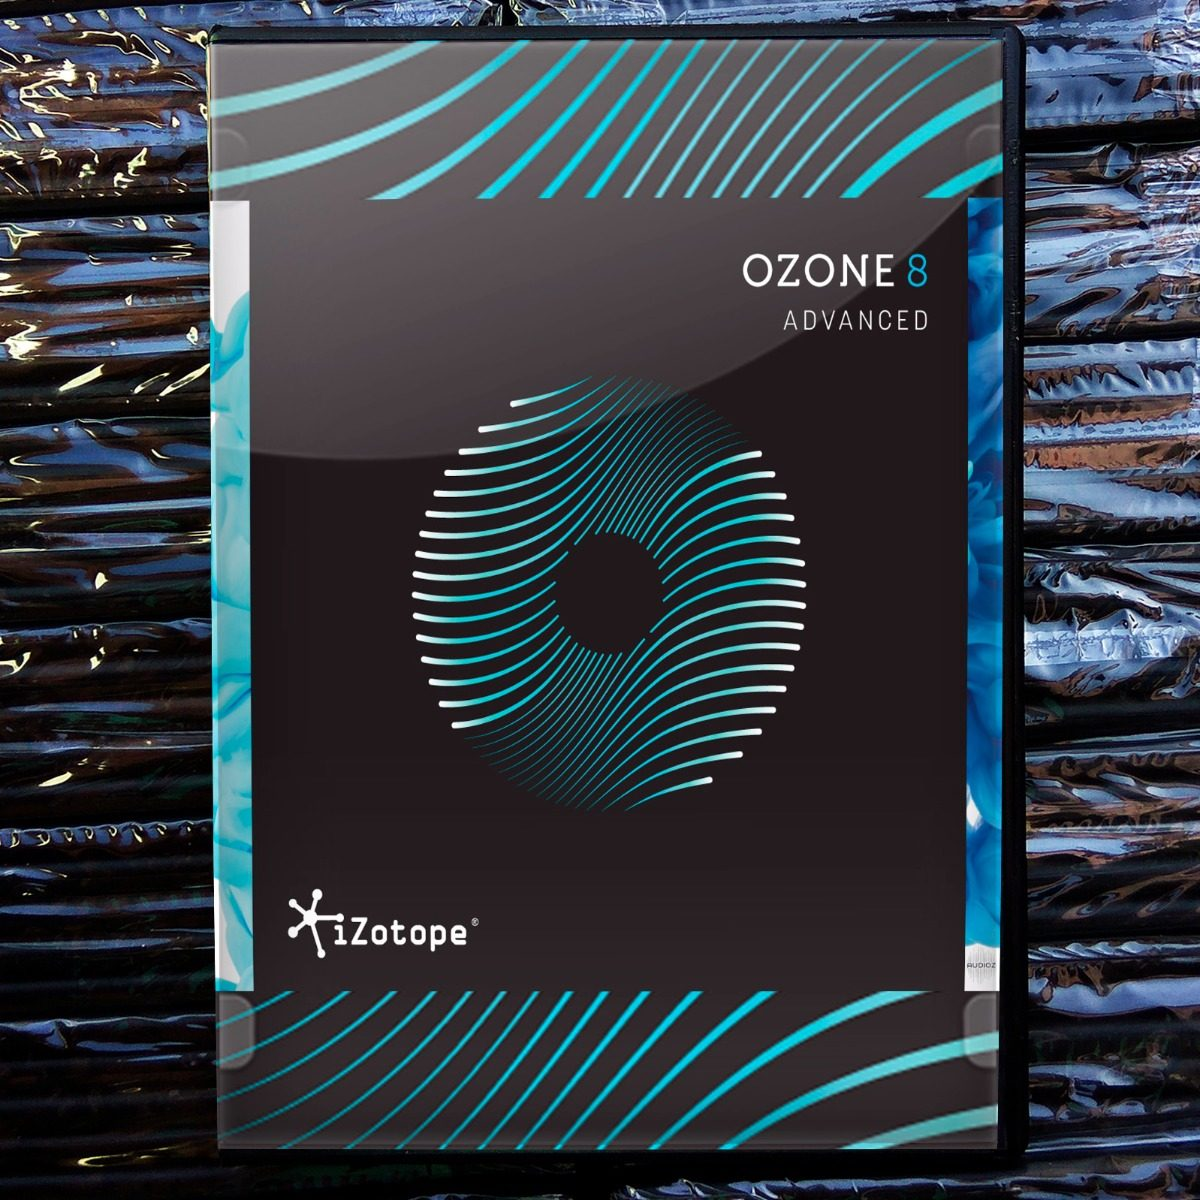 Izotope ozone vst | iZotope Ozone Advanced 8 VST Free Download  2019